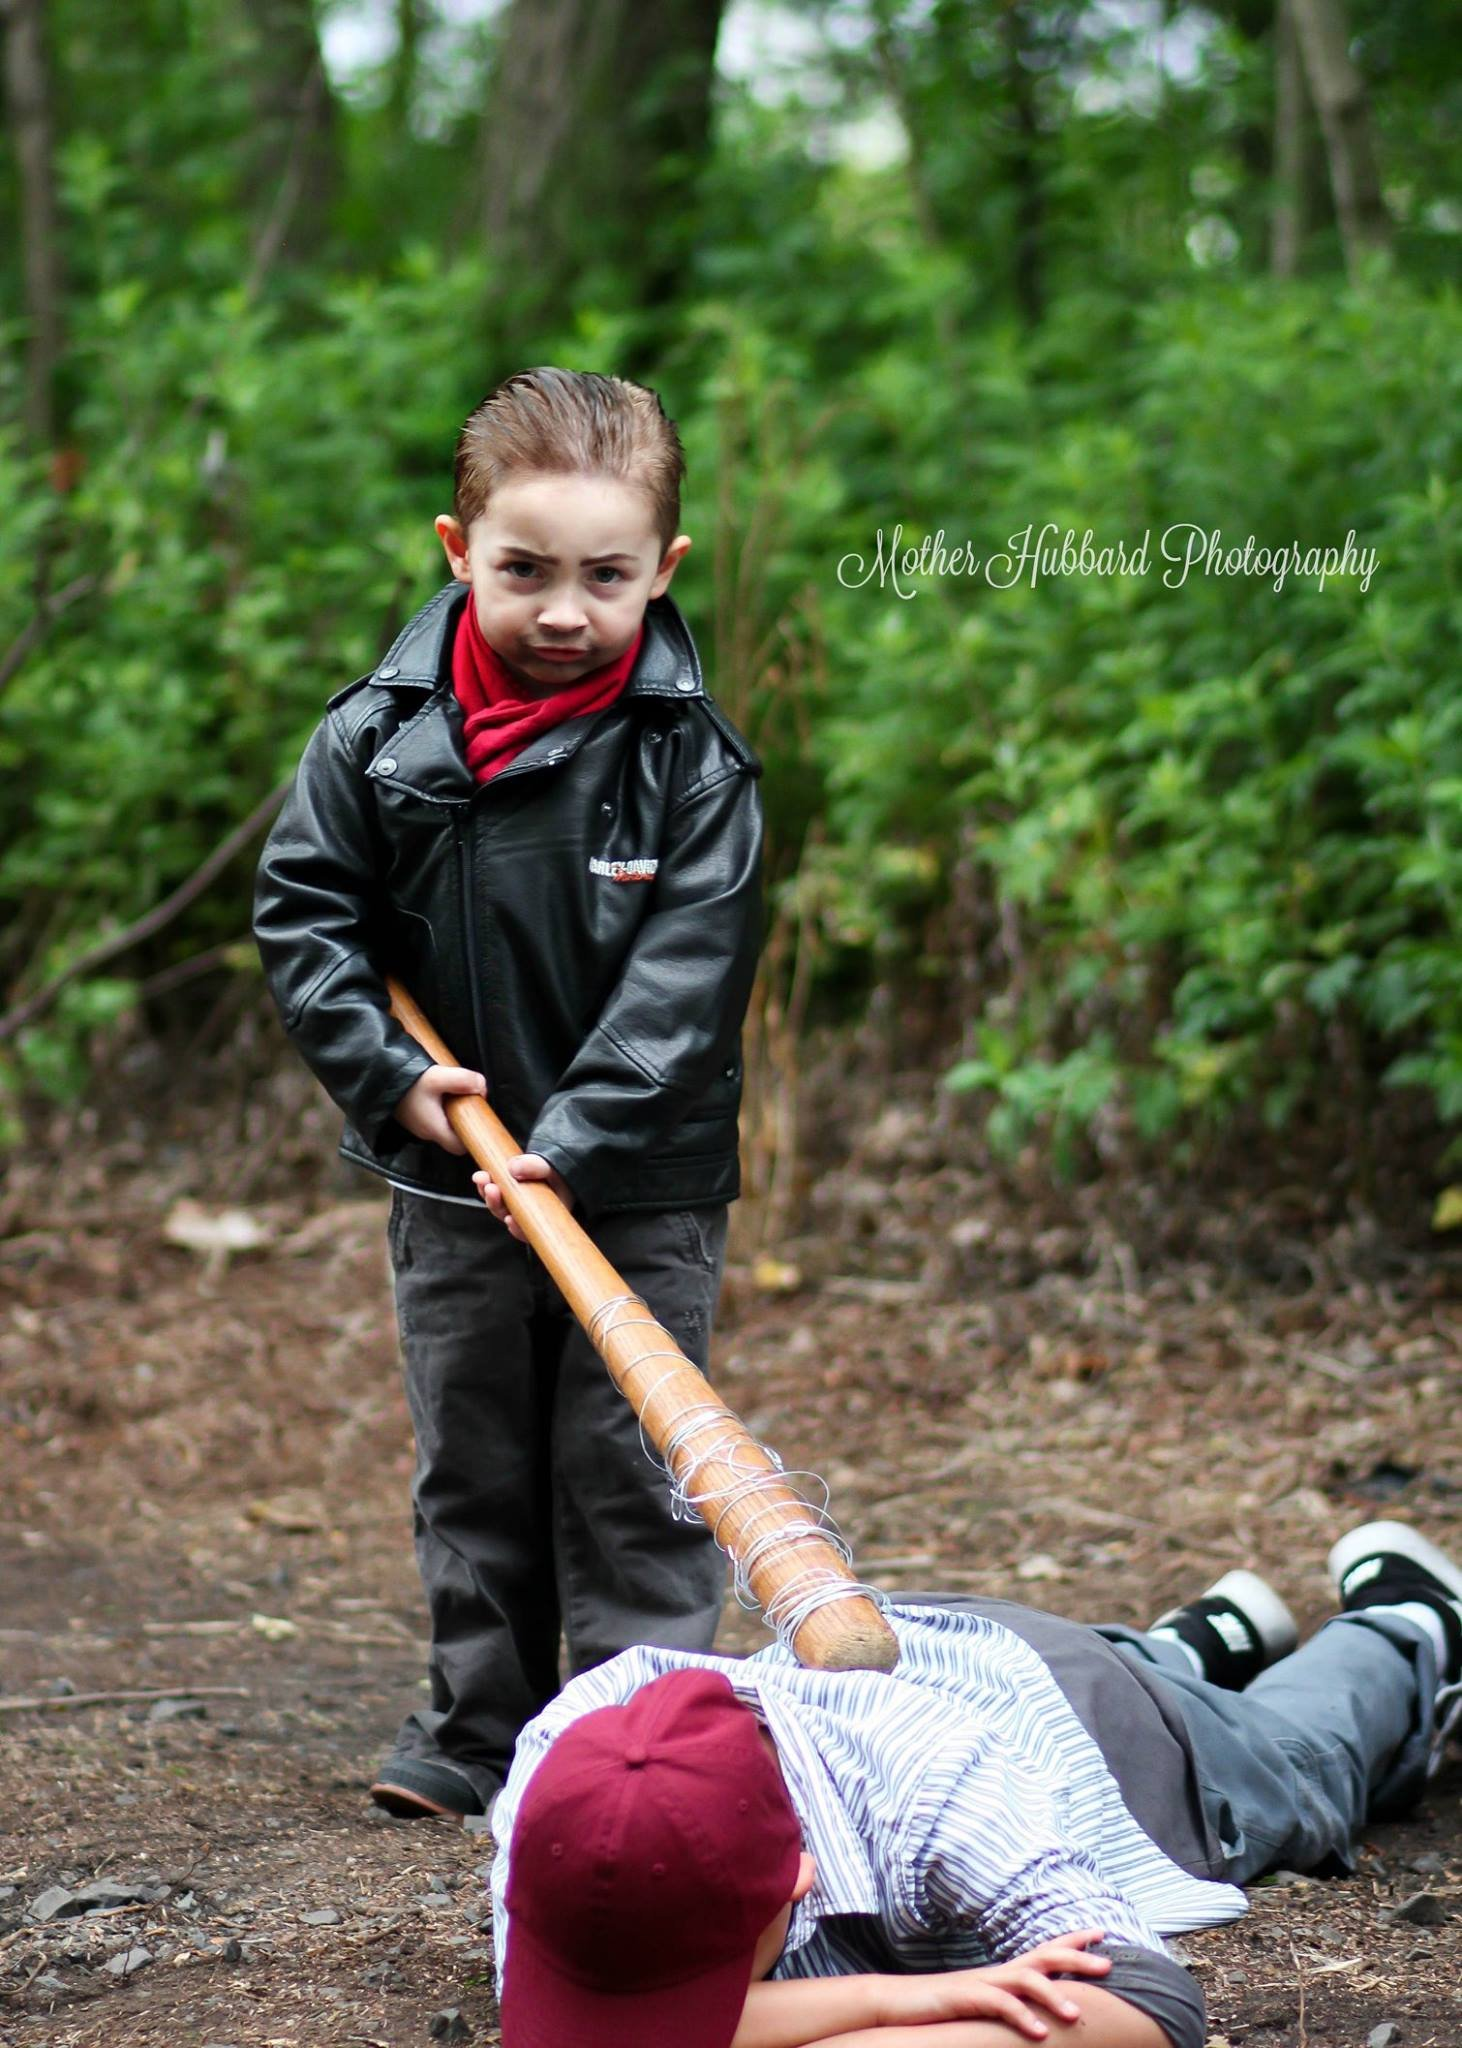 Negan Glenn Rhee - Not Everyone Is Happy About This Walking Dead Photo Shoot